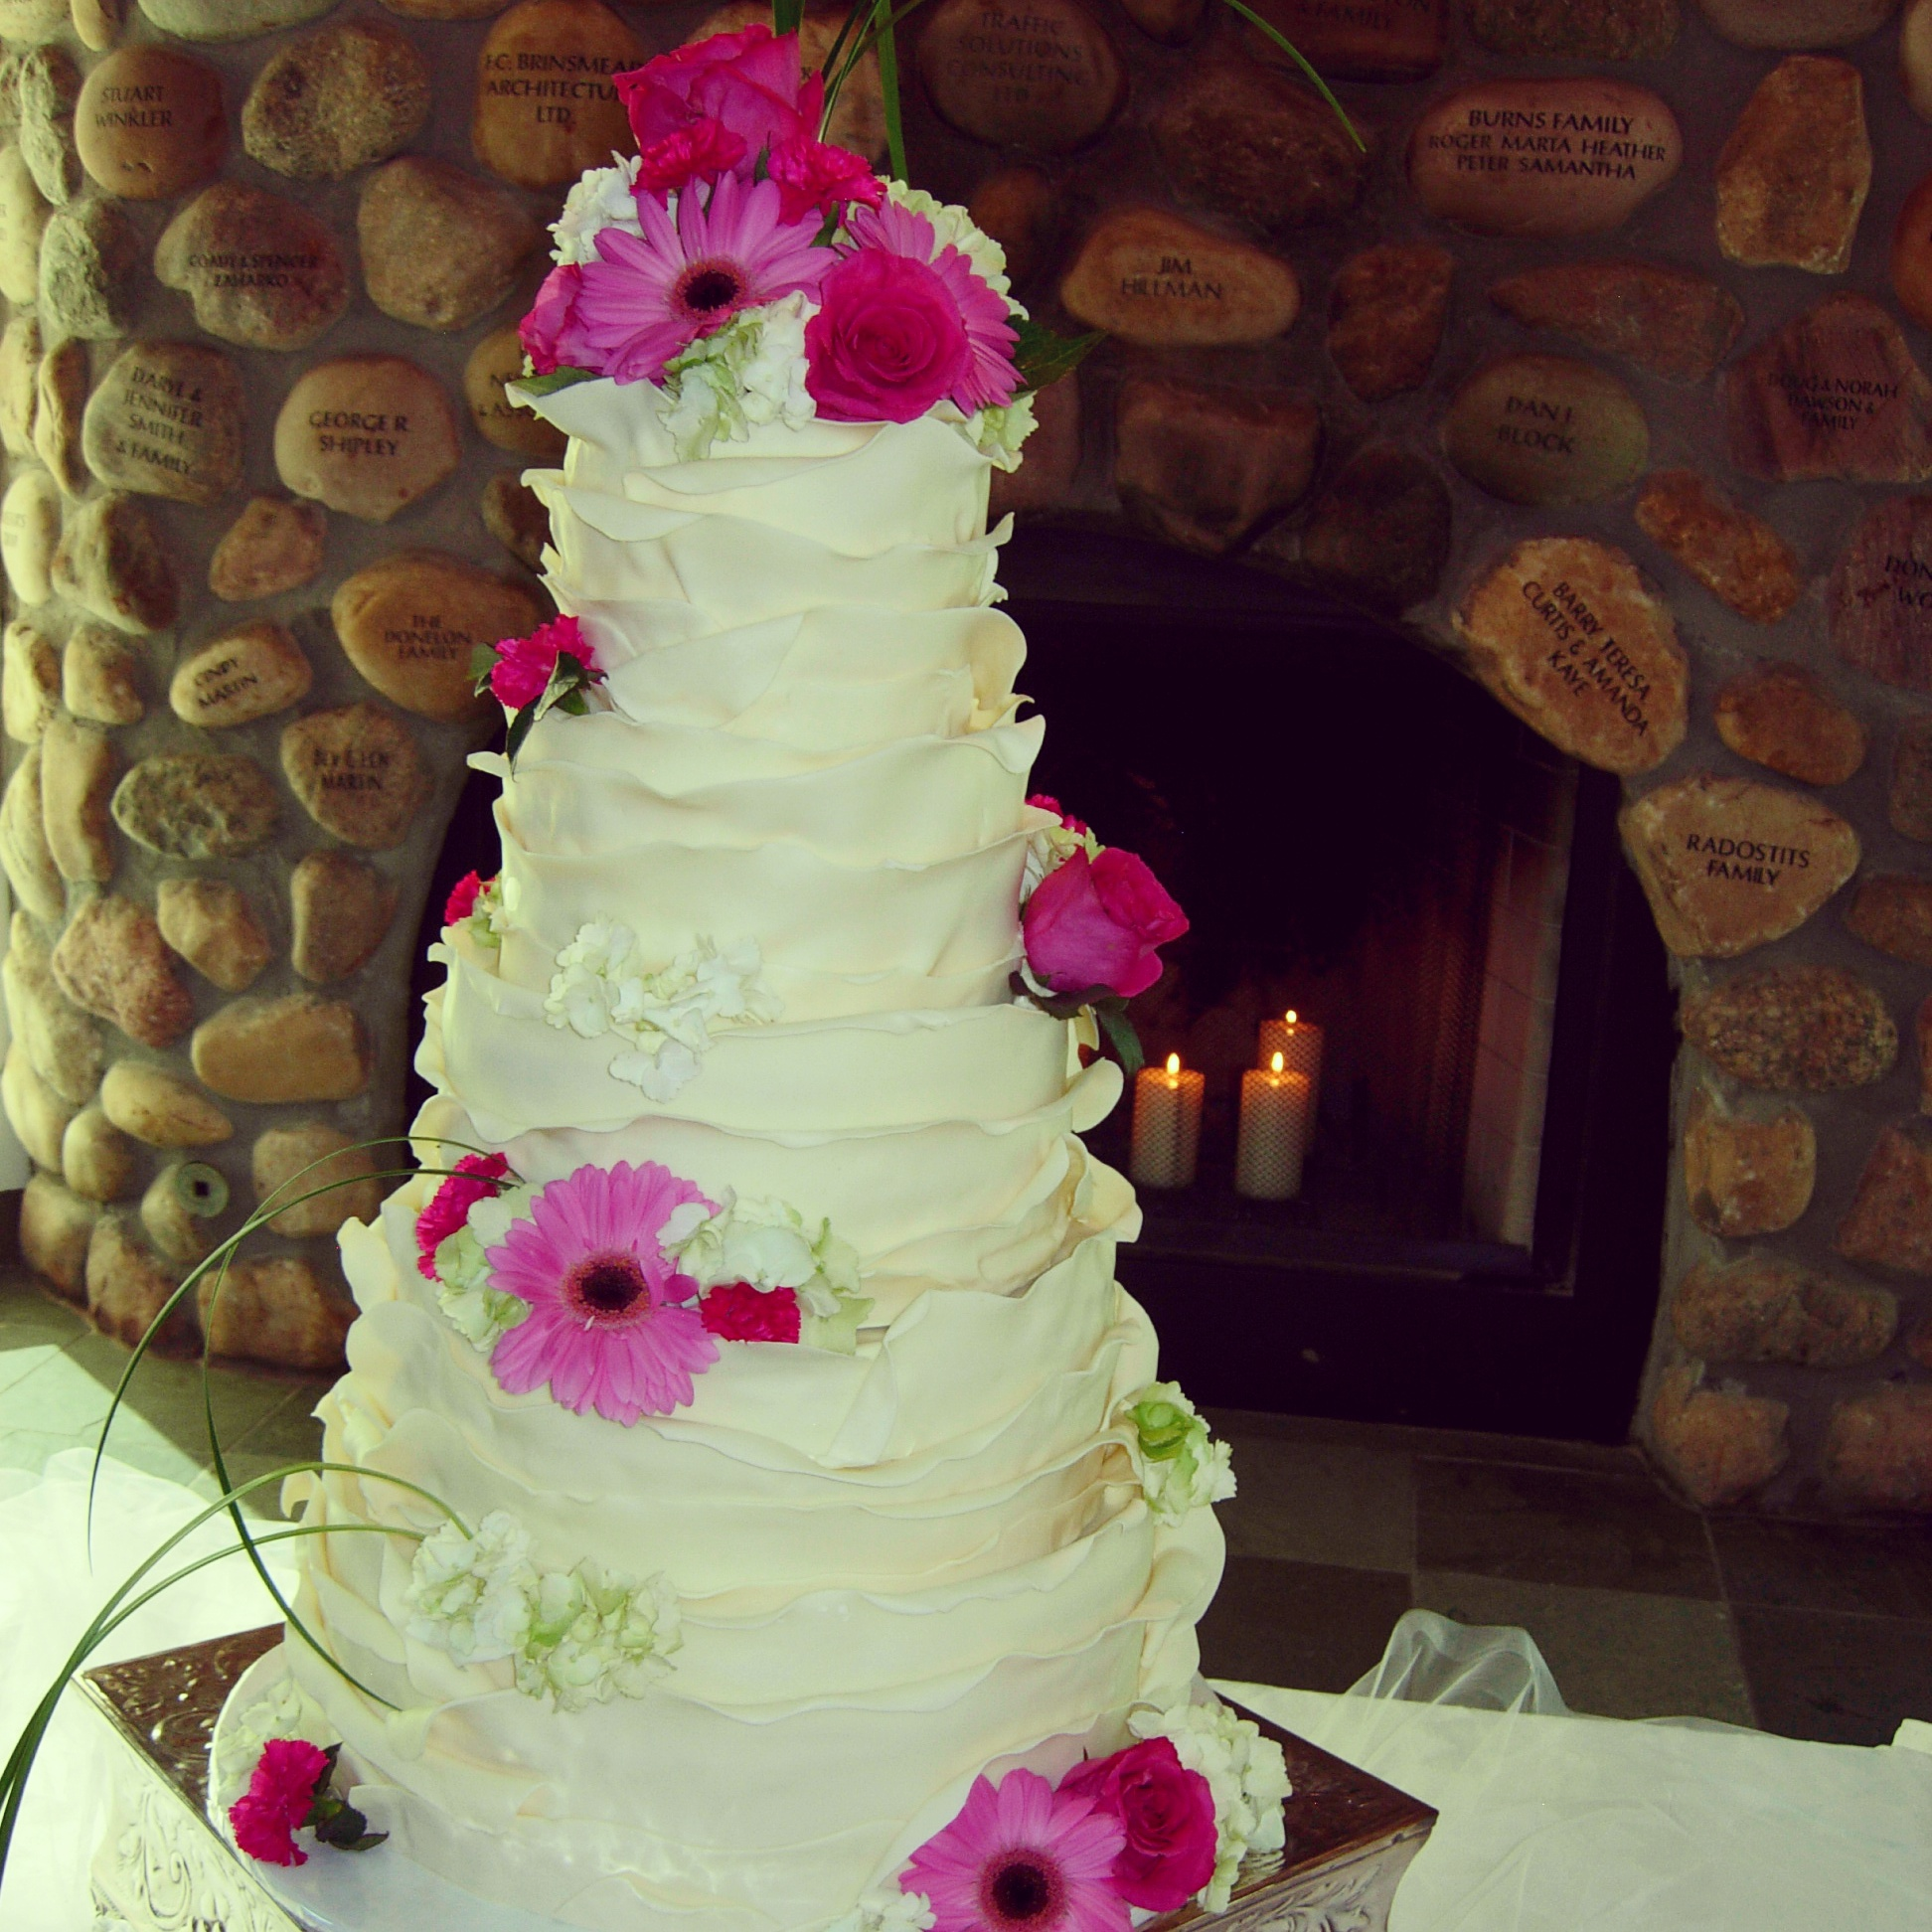 Edmonton Bakery Review The Art Of Cake Fa Shion Fi Lm Fo Od Tography